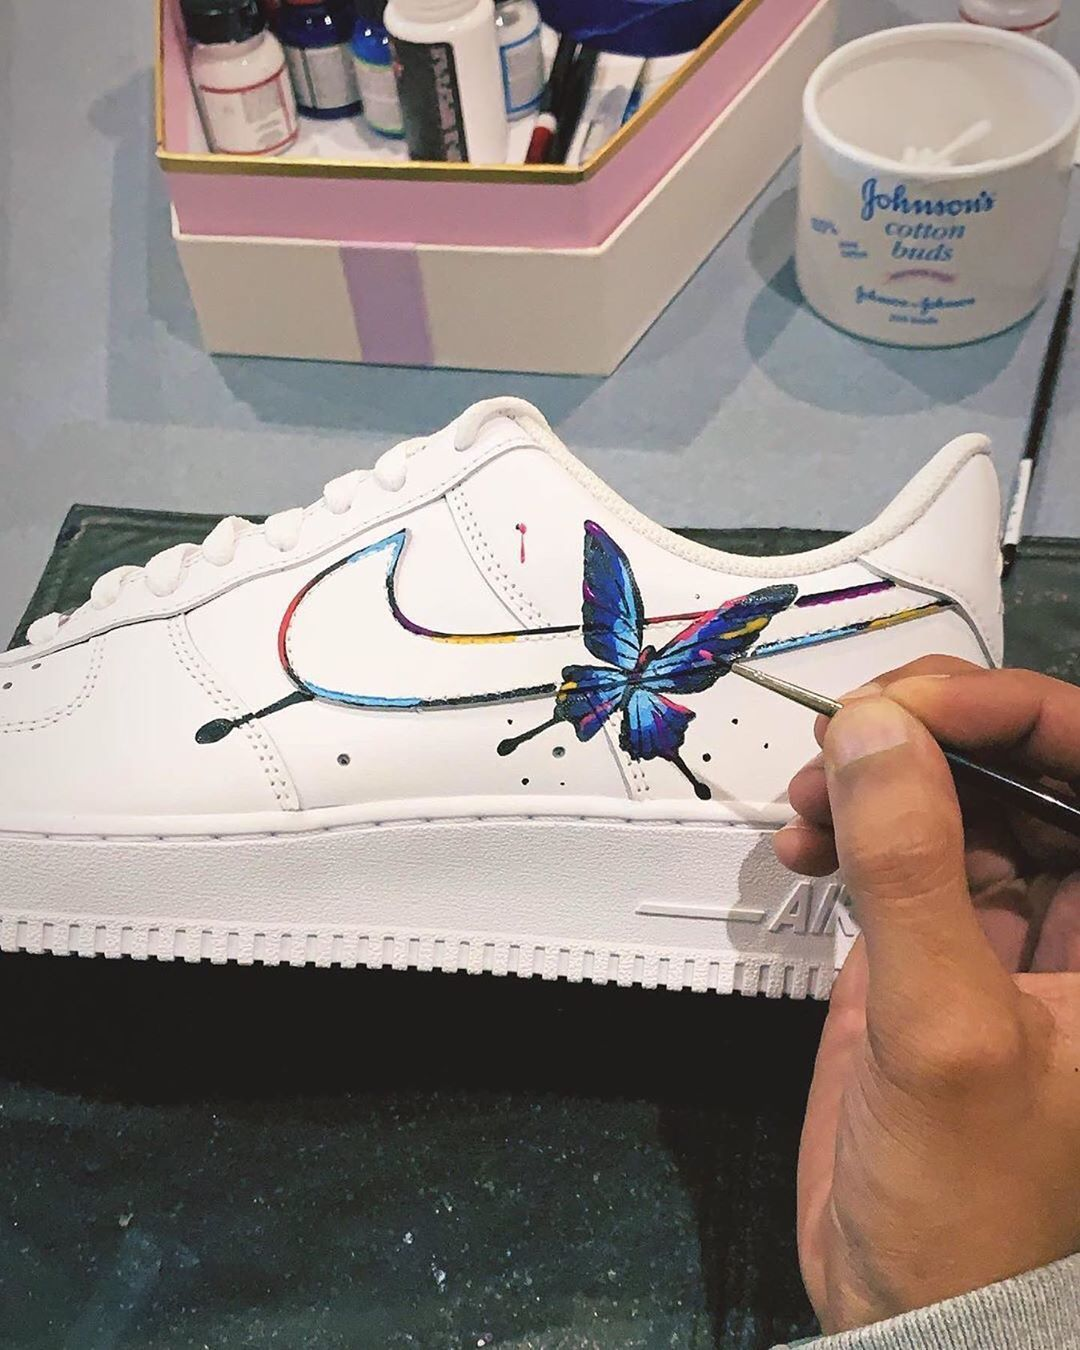 The Crep Architect's Rainbow Butterfly AF1 Sneakers, Air